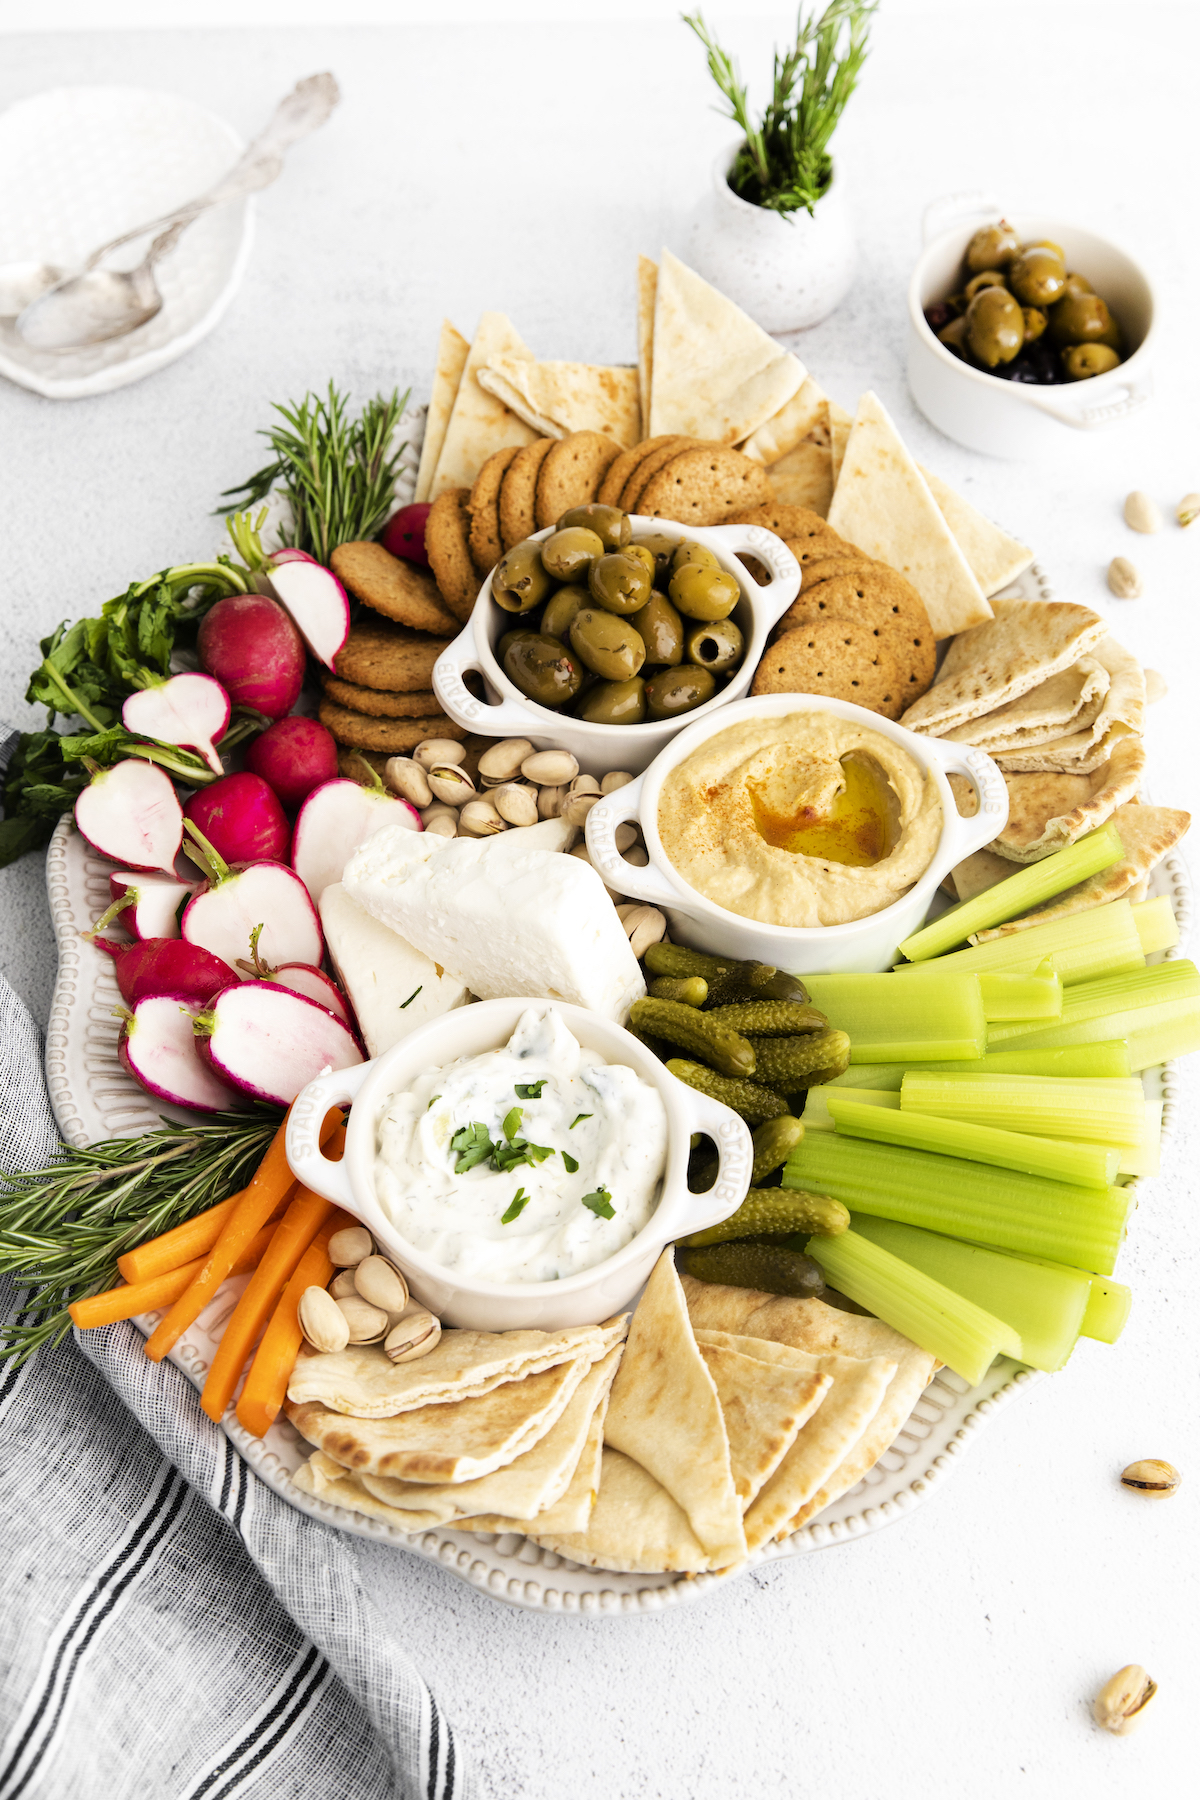 the completed mezze board served on a white table